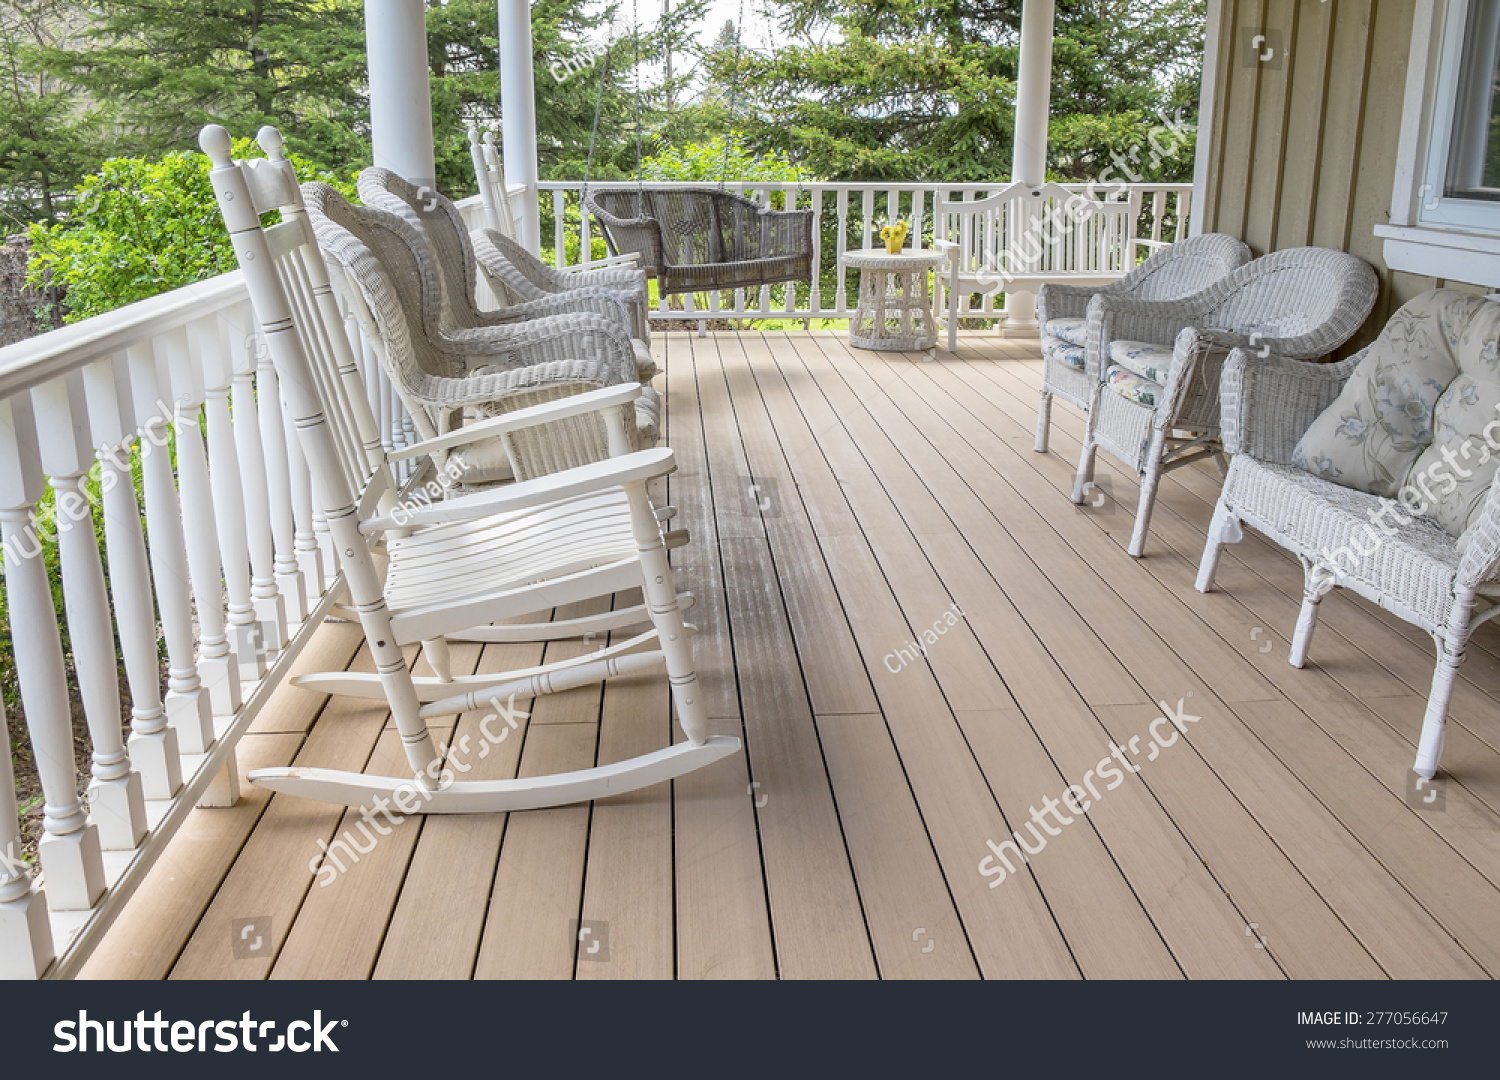 White Wicker Rocking Chair Veranda Filled White Wicker Chairs Rocking Stock Photo